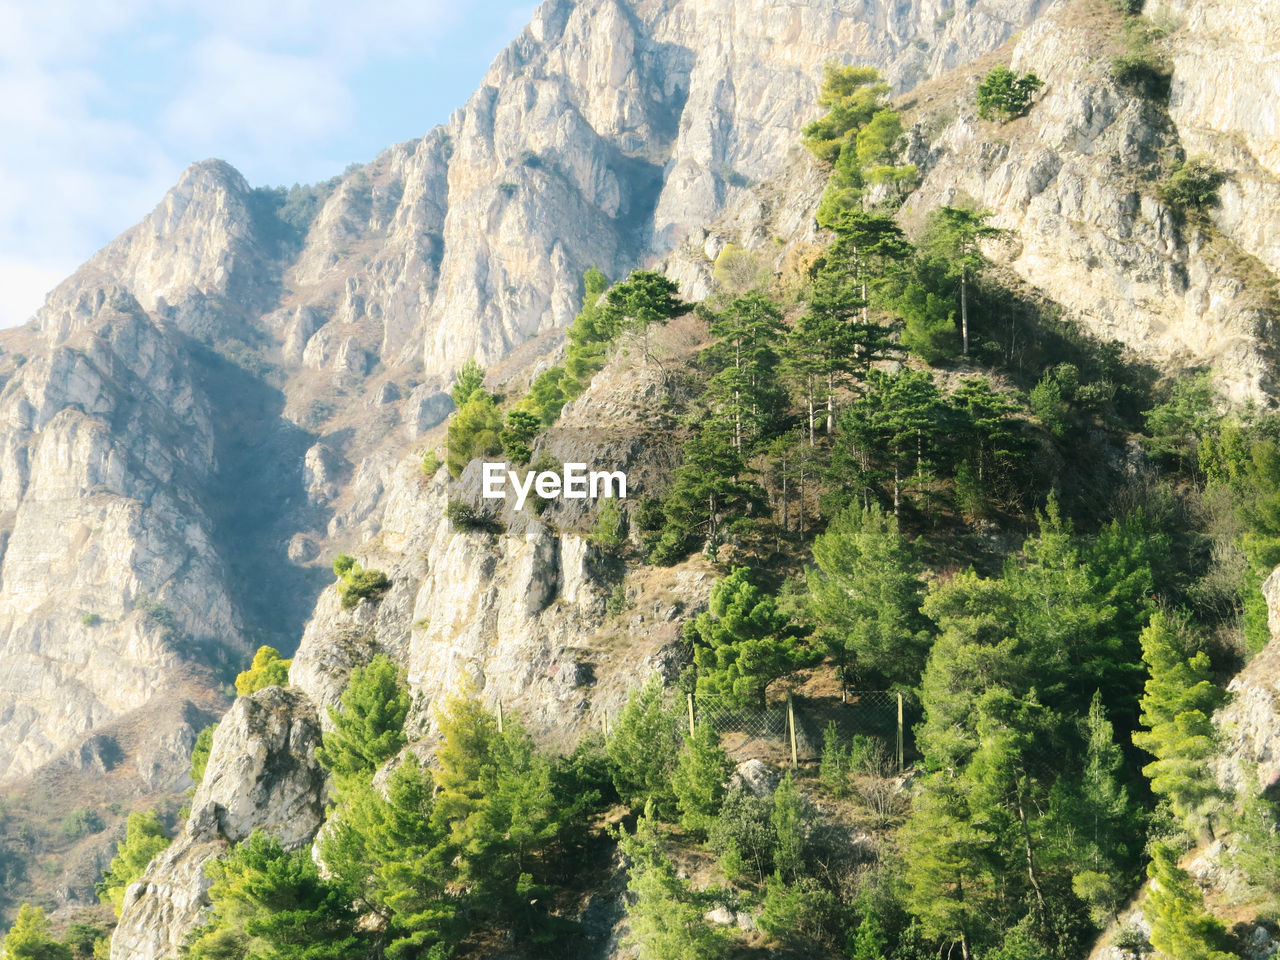 Beauty In Nature Day Environment Formation Geology Growth In Nature Landscape Landscape_photography Mountain Mountain Peak Nature No People Non-urban Scene Outdoors Pine Trees Plant Rock Rock Formation Scenics - Nature Tranquil Scene Tree The Great Outdoors - 2018 EyeEm Awards